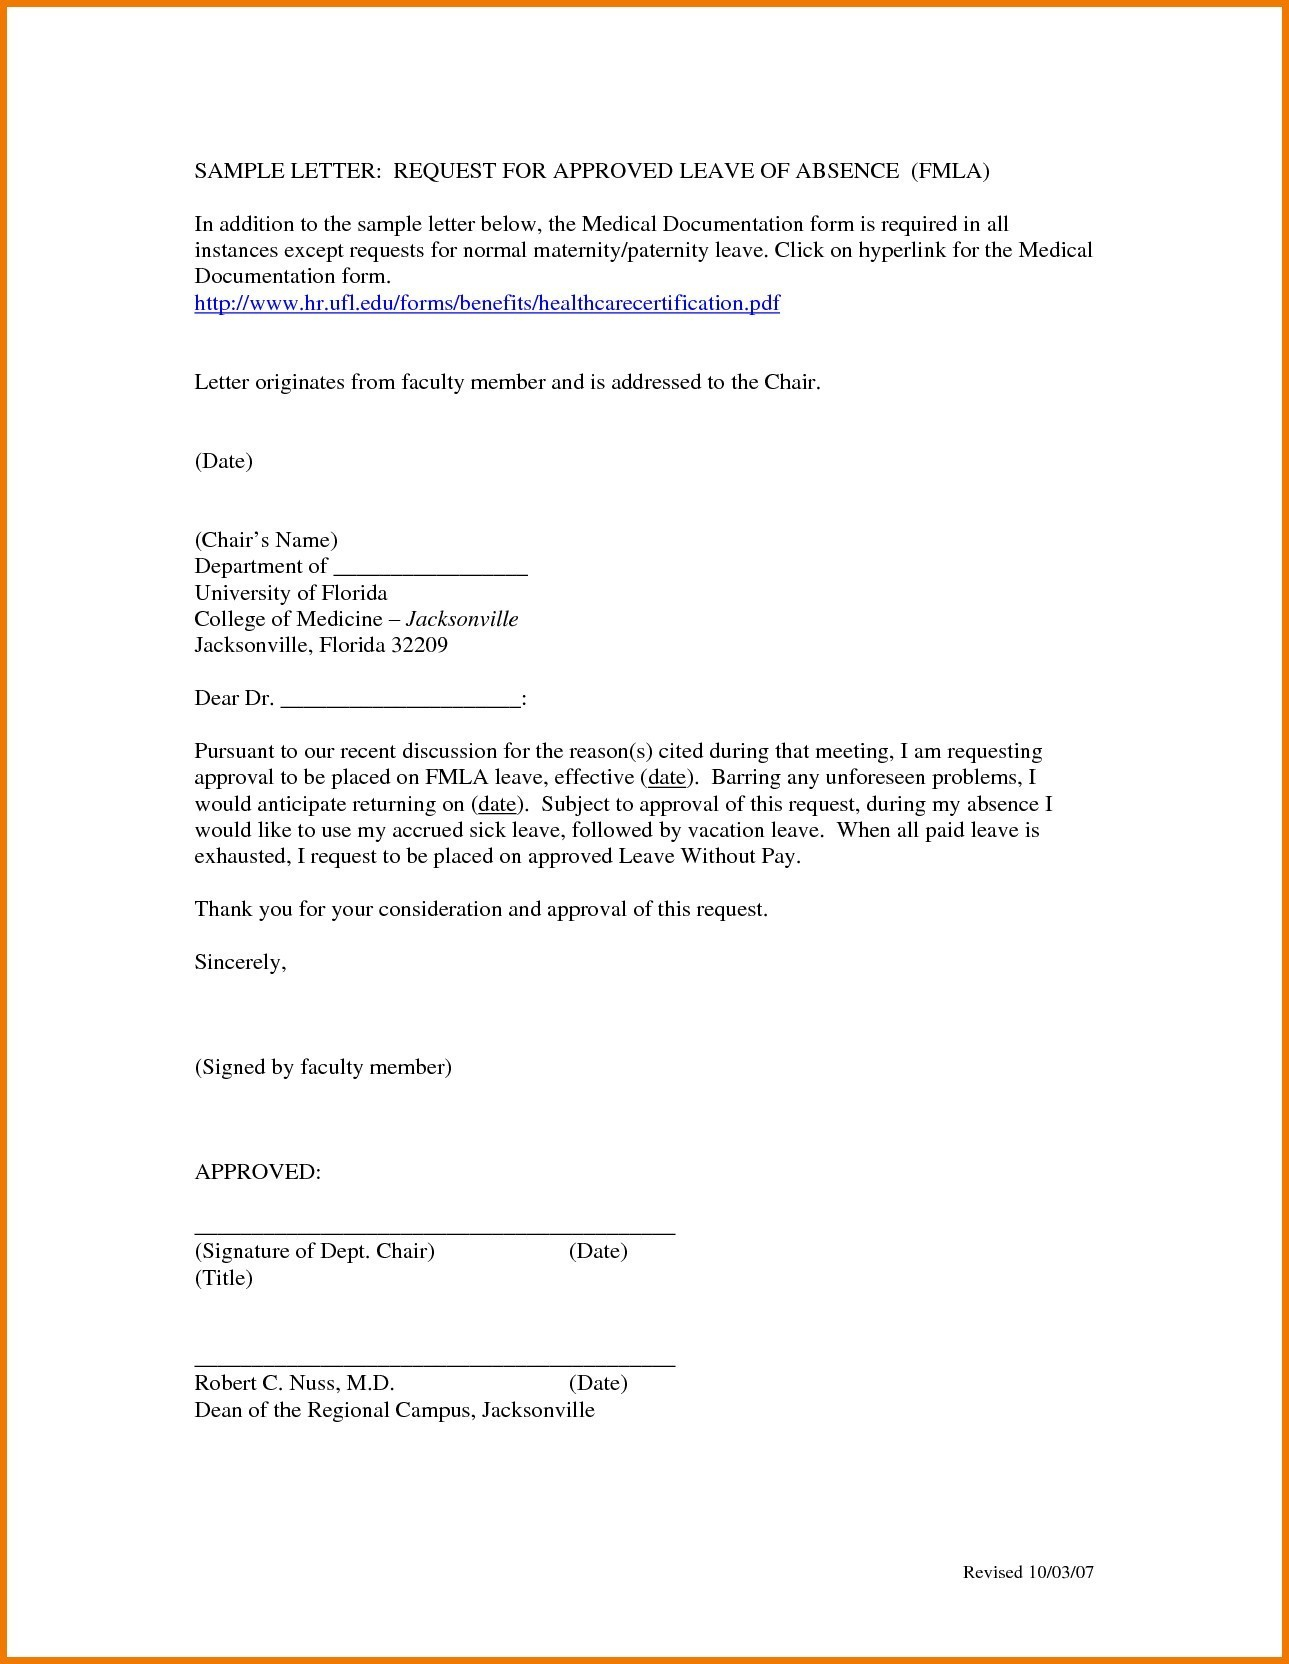 How to write a medical leave of absence letter for work